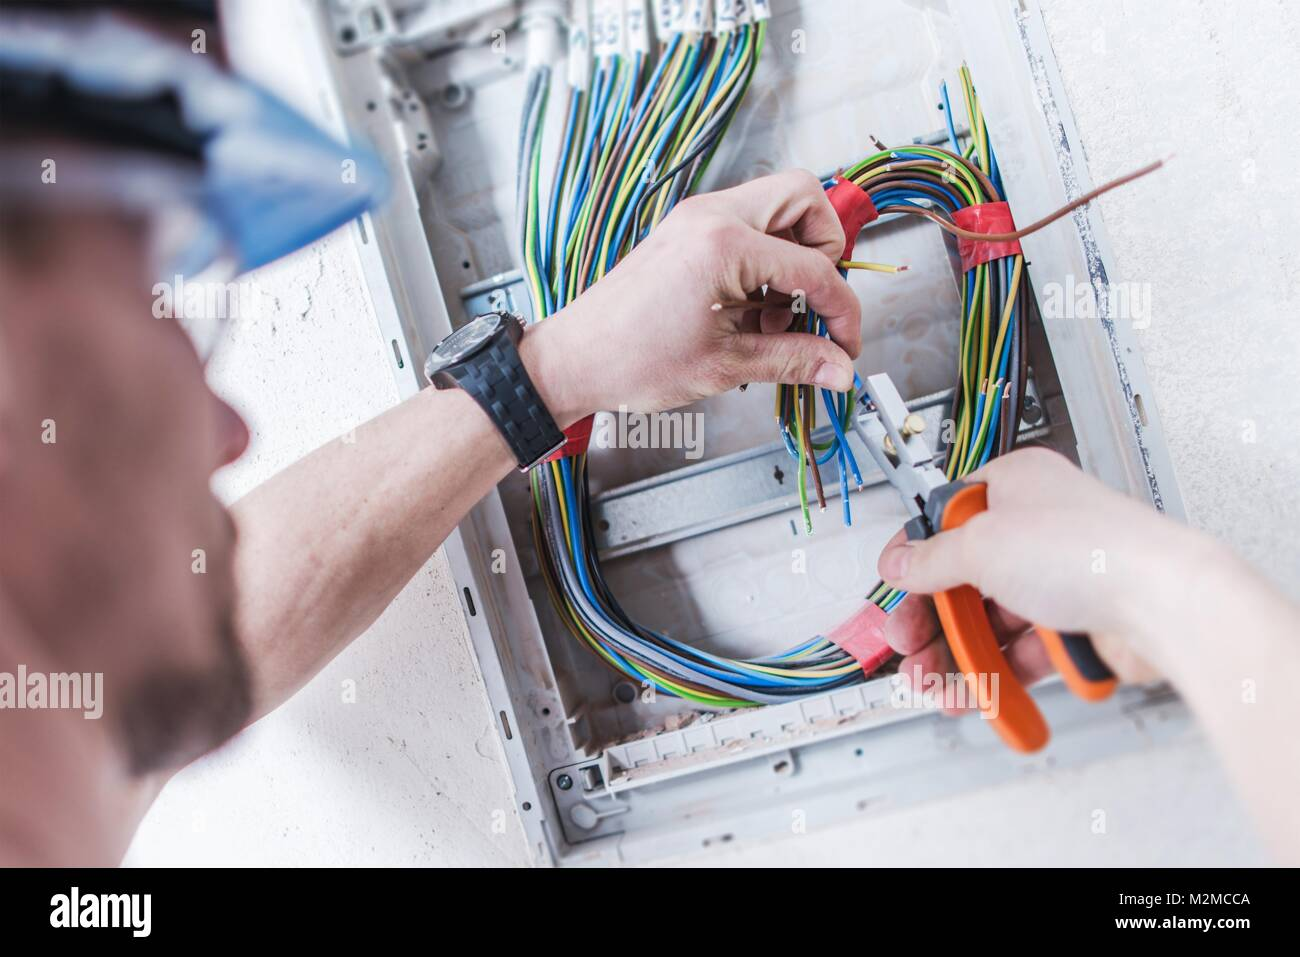 Electrical System Installation by Professional Caucasian Electrician. Construction and Power Industry Theme. - Stock Image